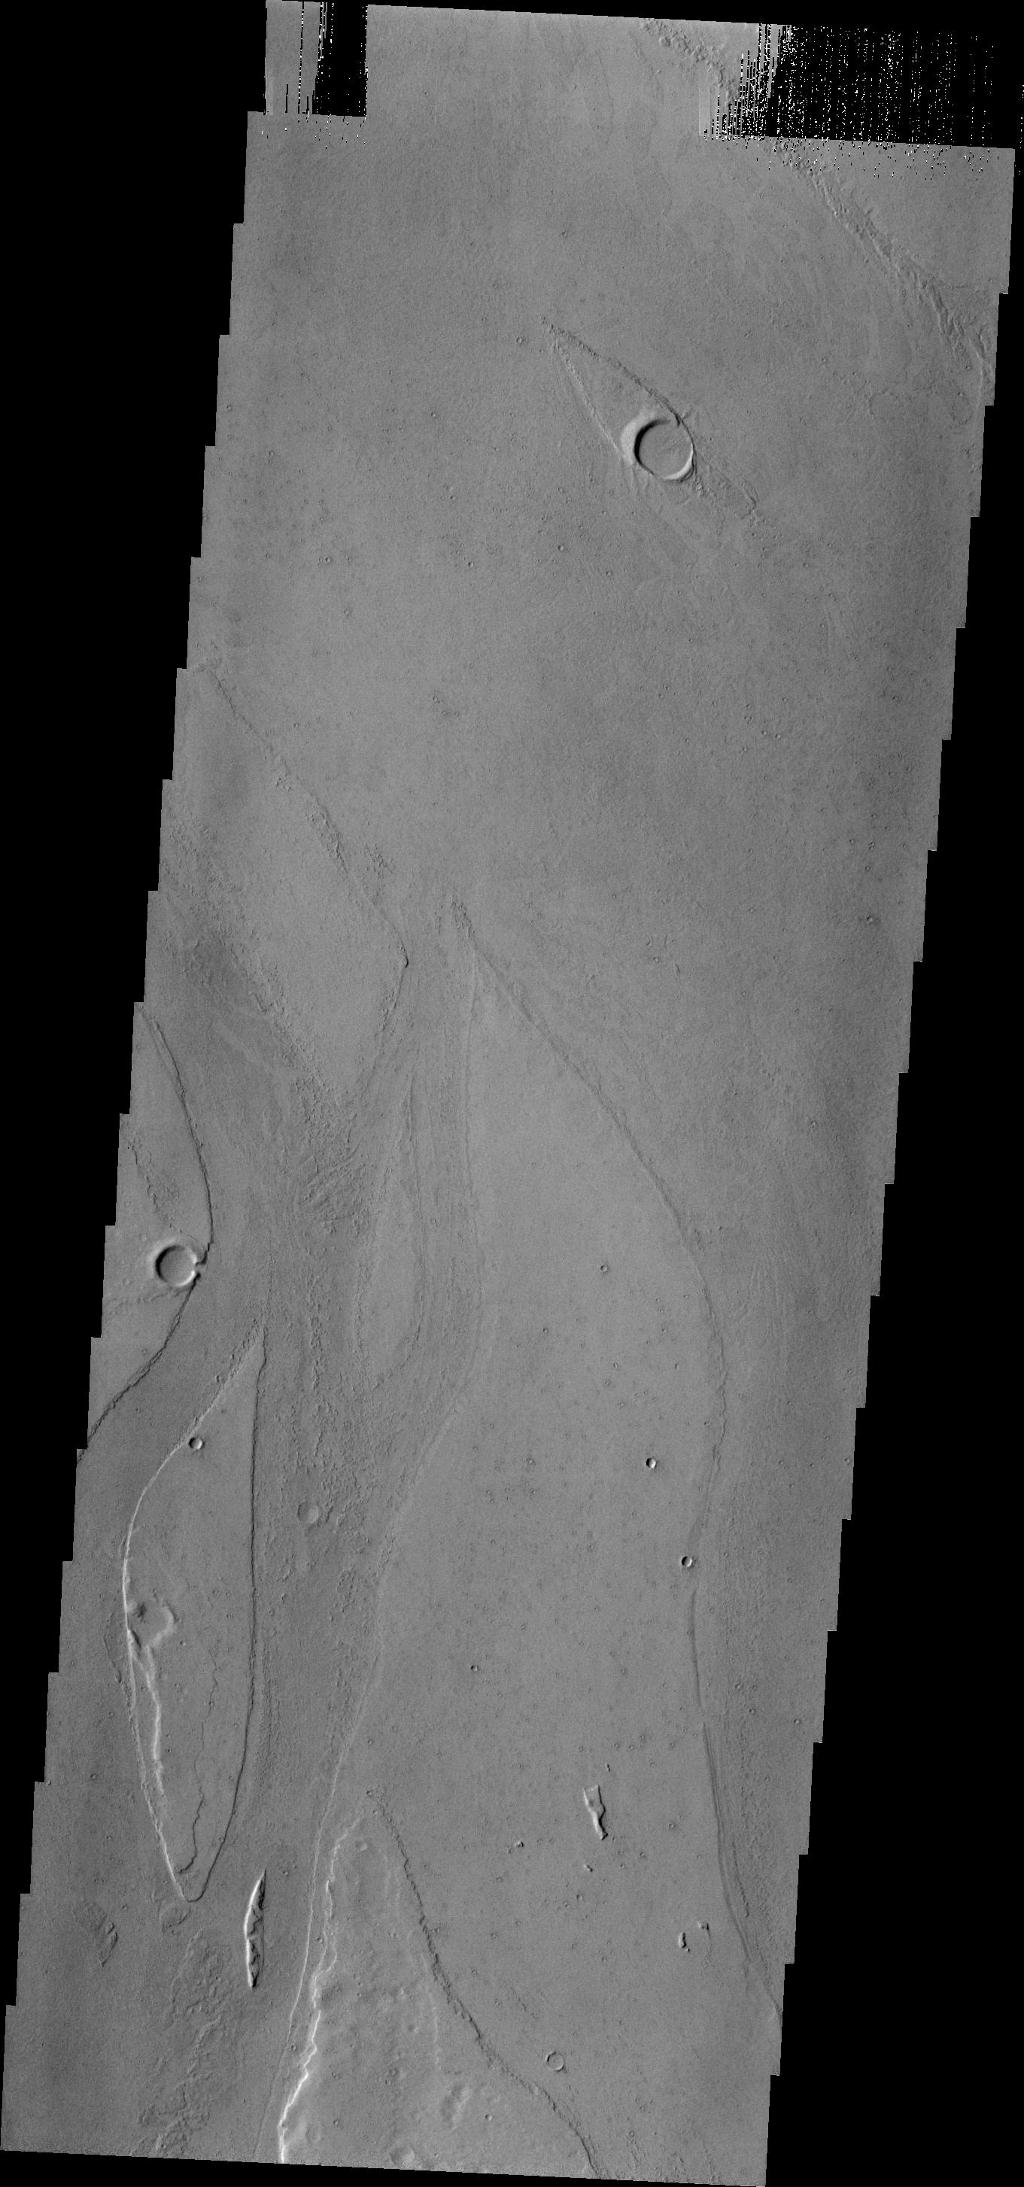 Marte Vallis, located in Amazonis Planitia, is broad and shallow. The streamlined islands at the top and bottom of the image illustrate this.